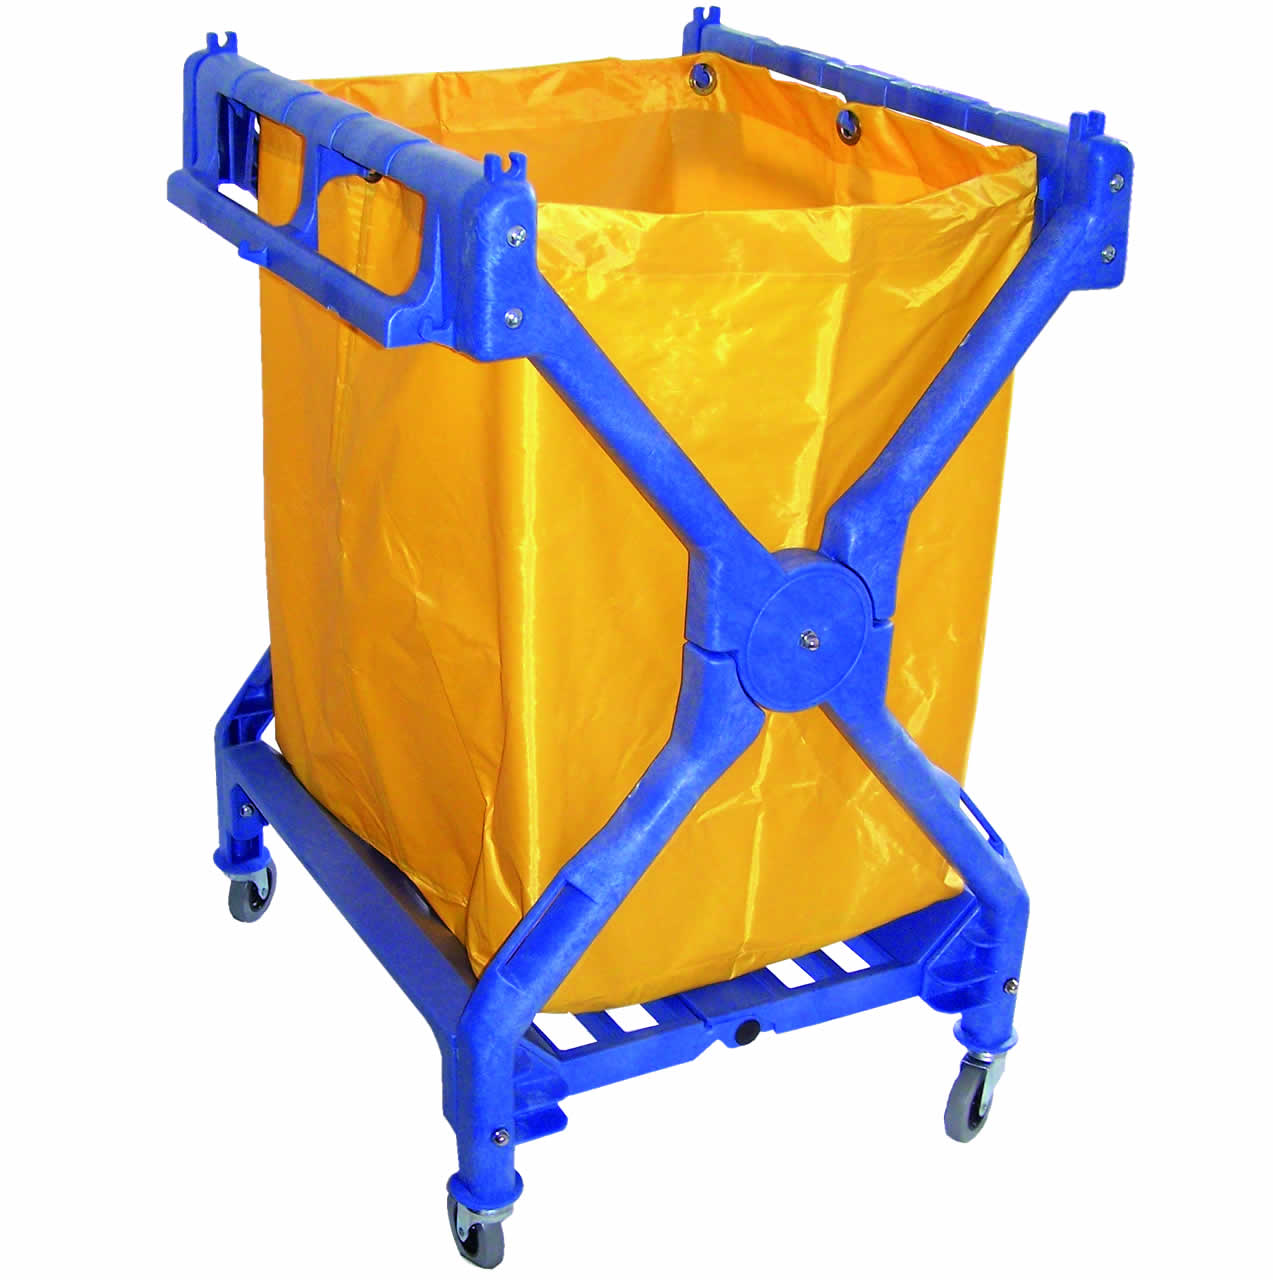 6275-scissor-cart-with-bag.jpg